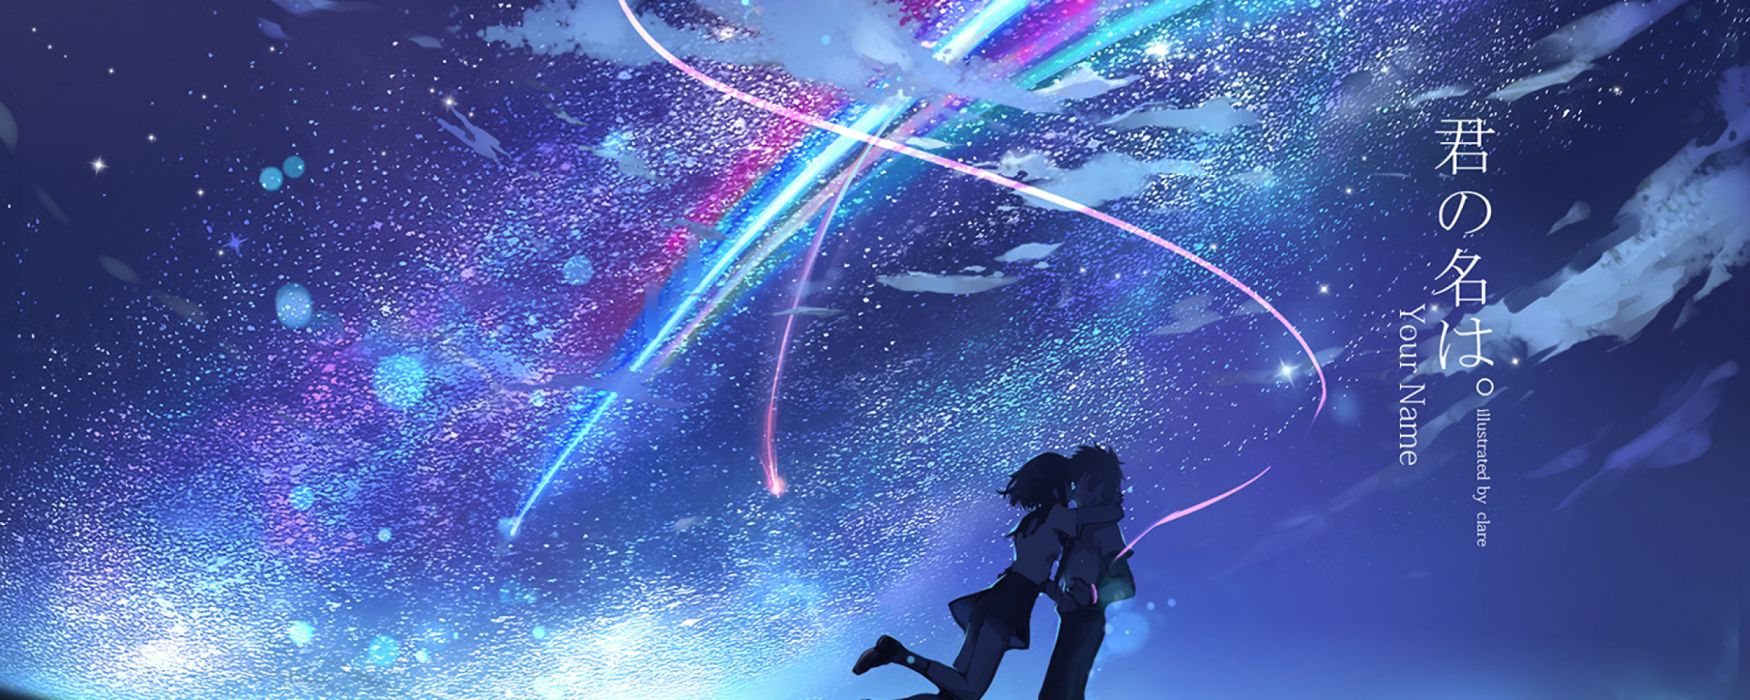 20+ New Anime Wallpaper Dual Monitor Download - Anime ...